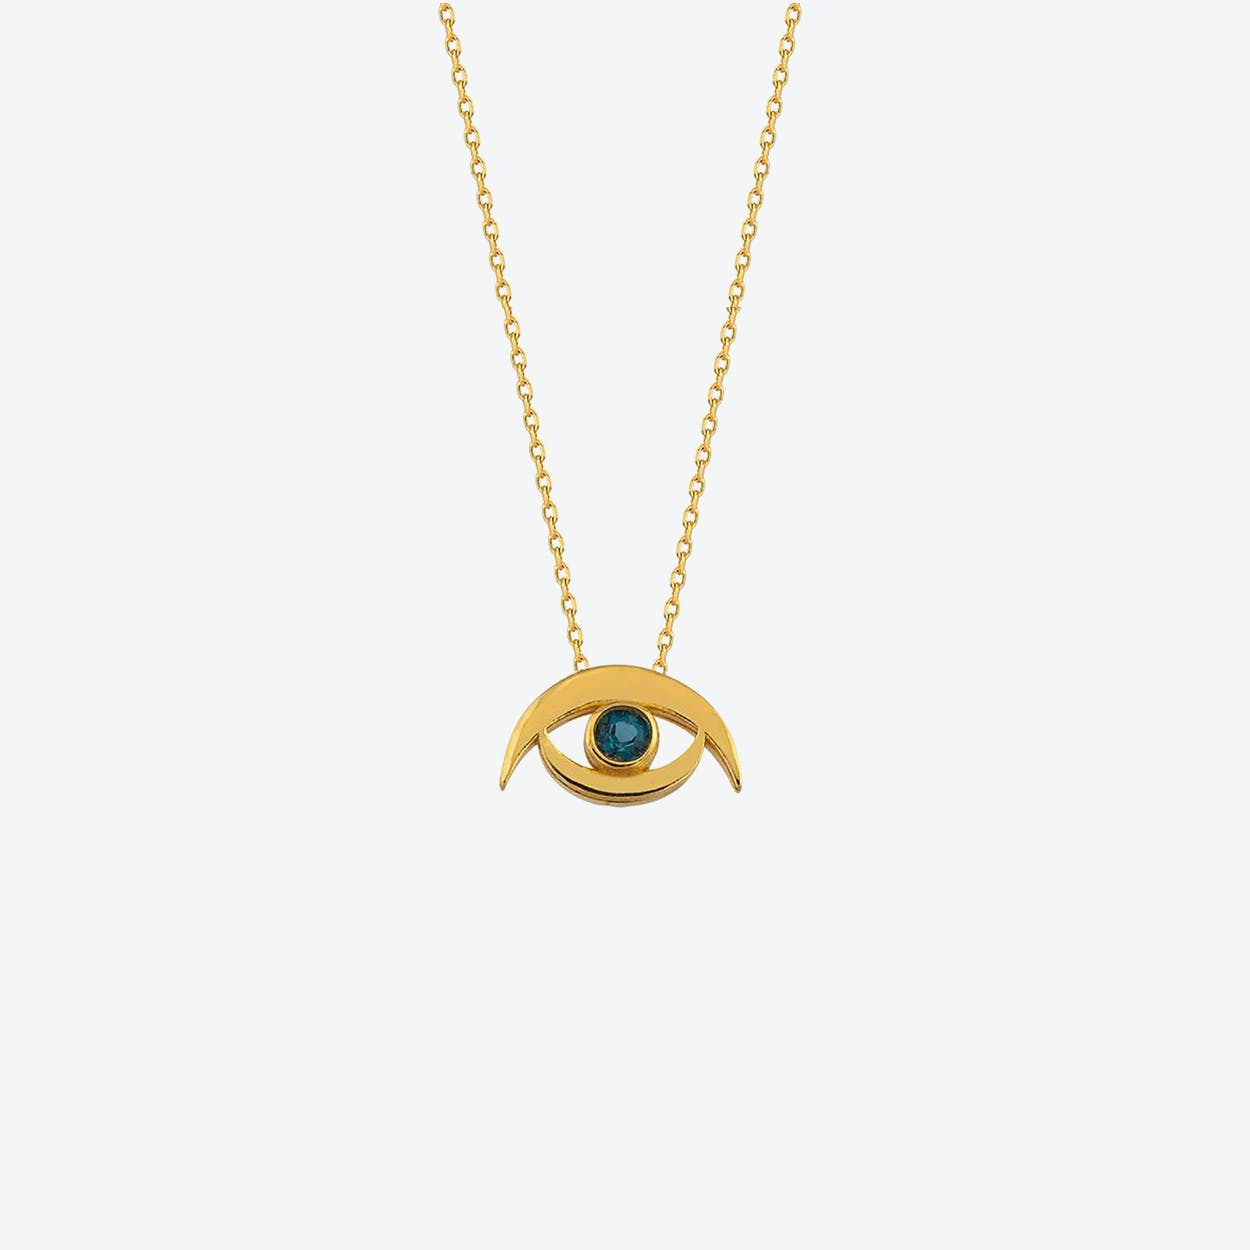 Gold Evil Eye Necklace w/ Topaz